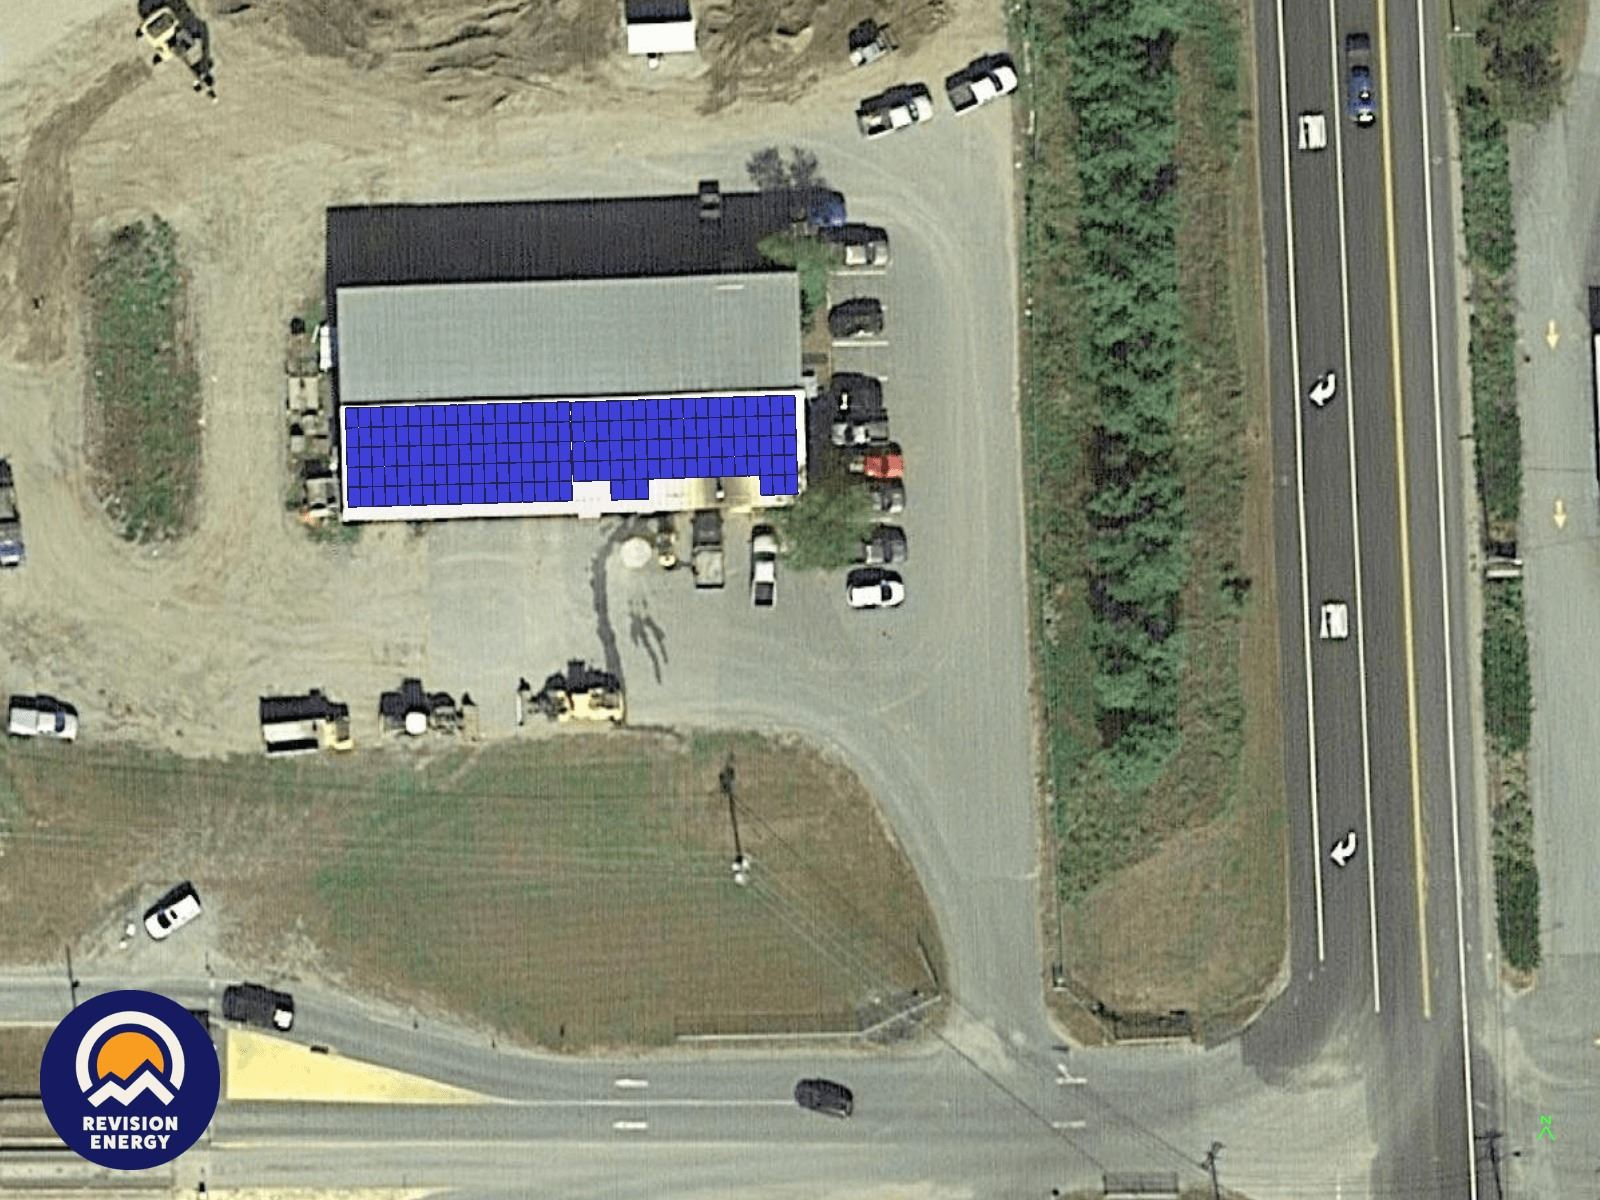 Landfill Maintenance Building roof with solar array depiction